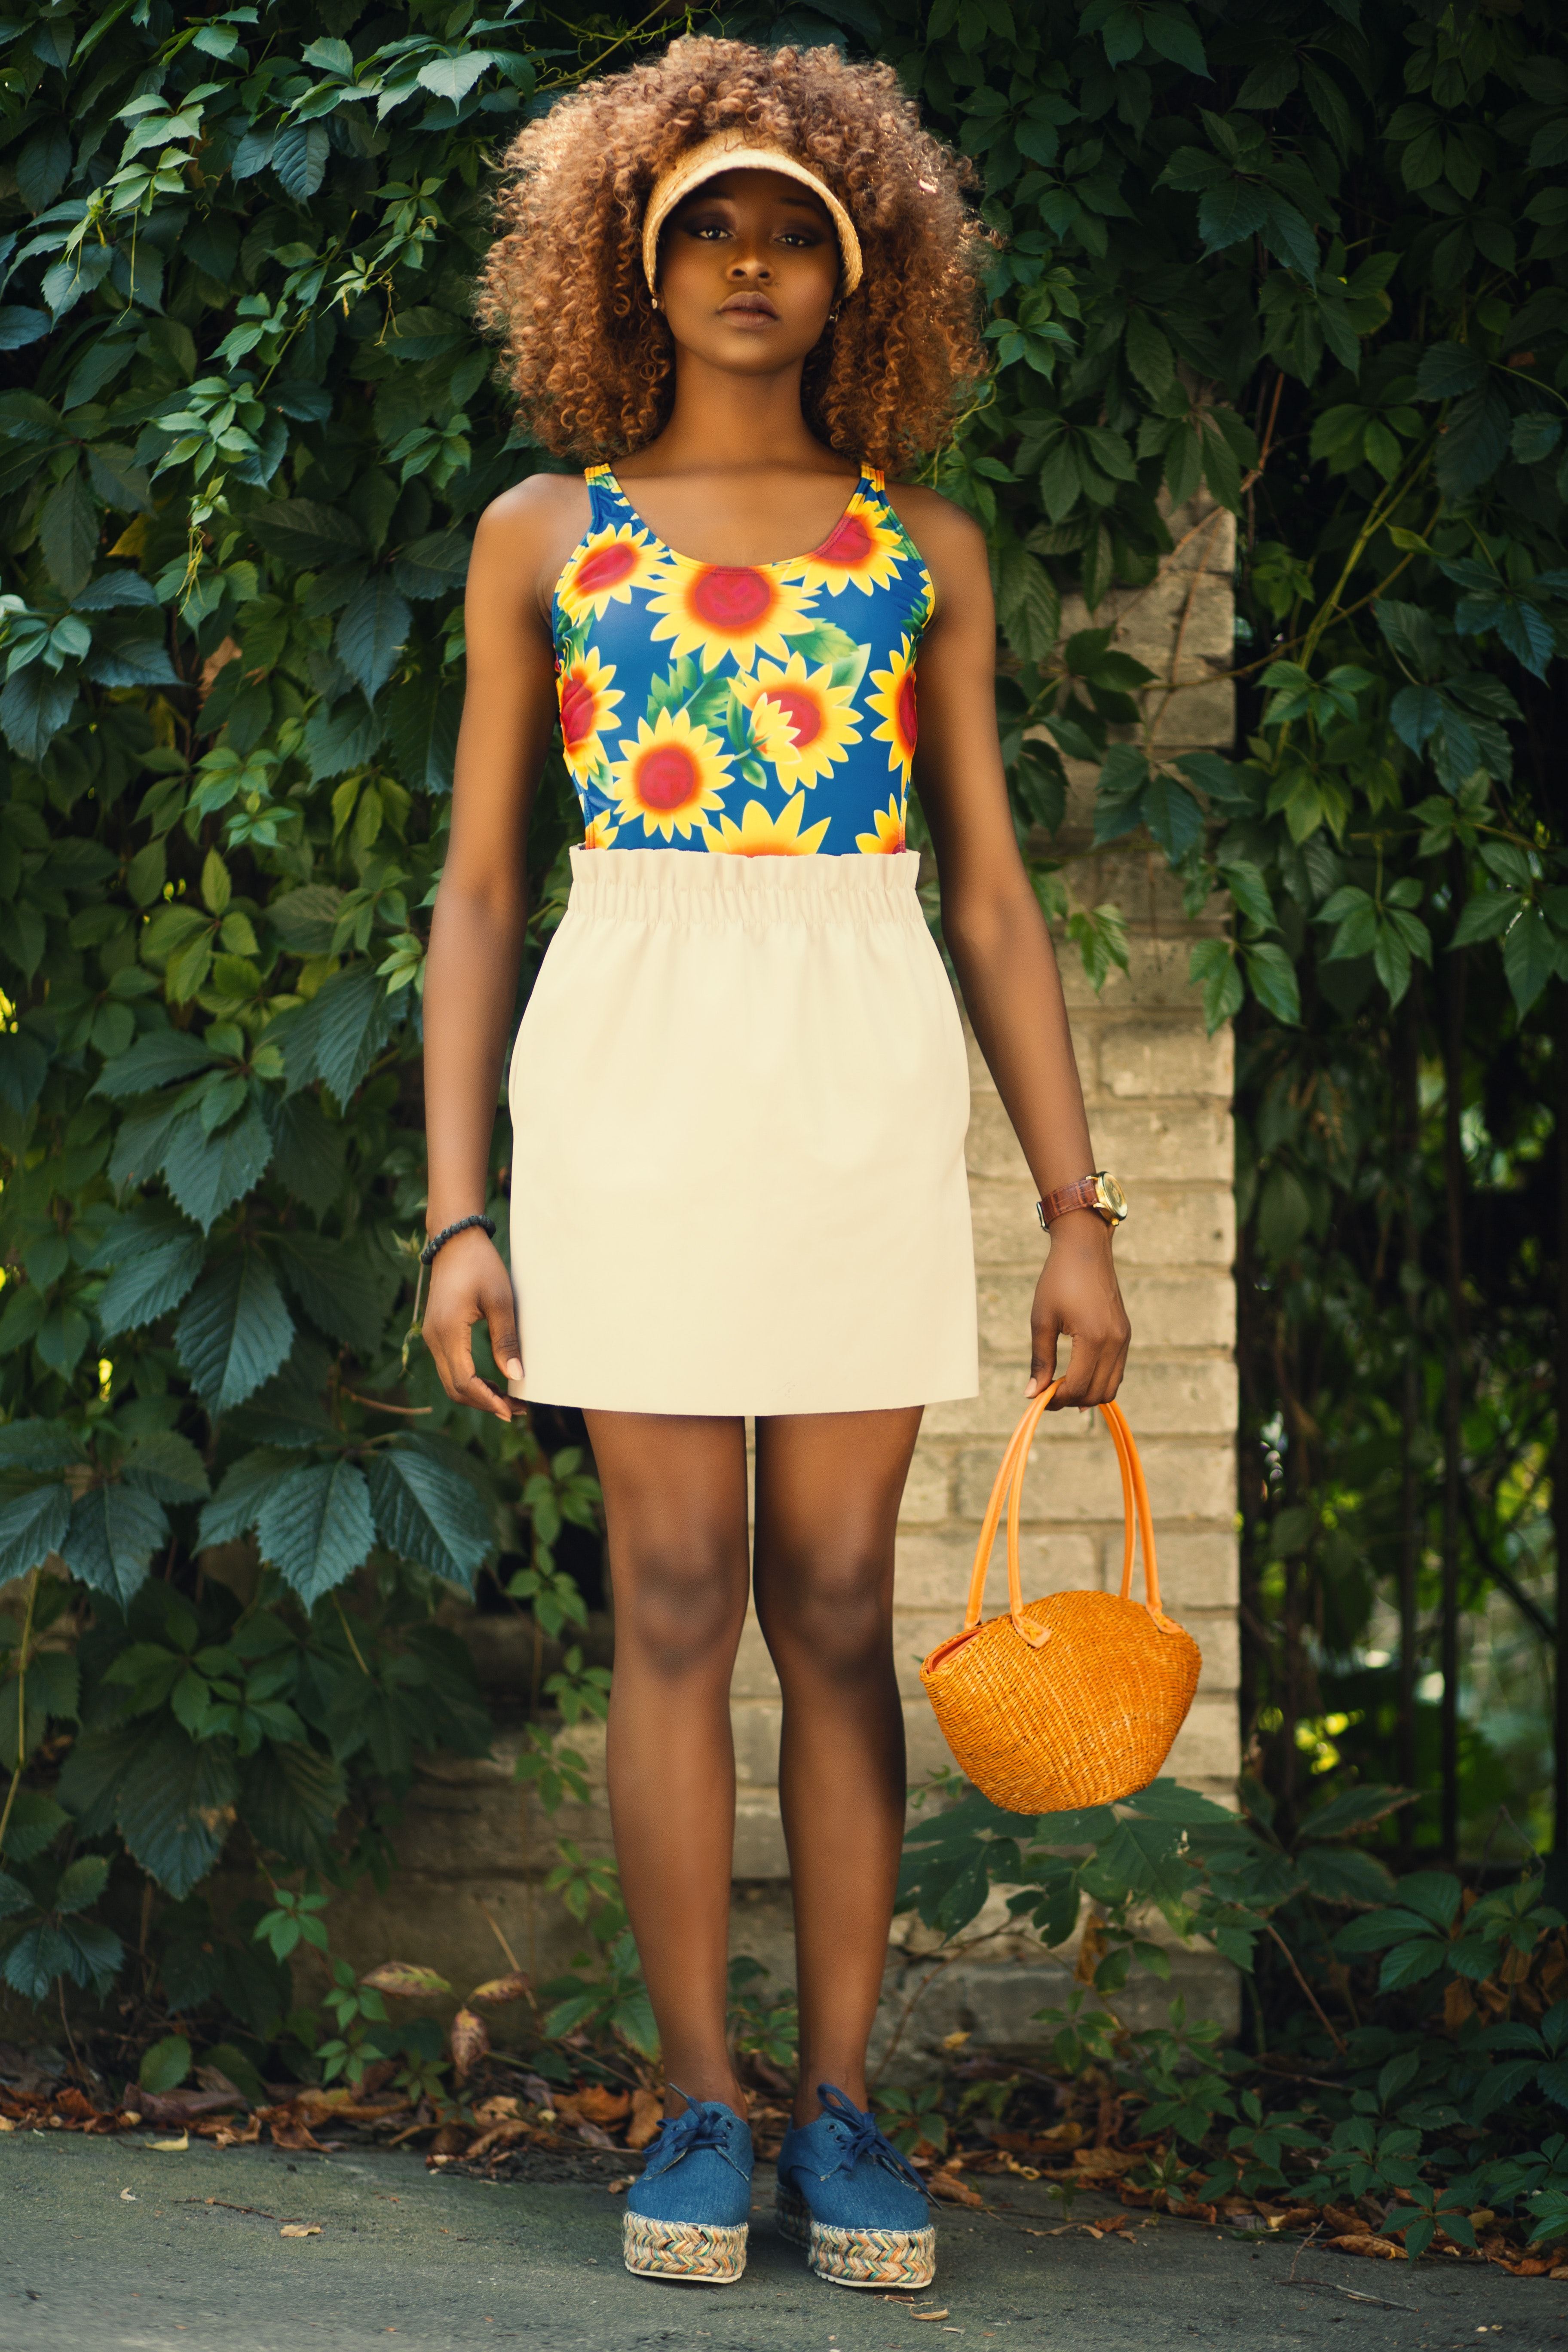 Woman Wearing Yellow and Blue Floral Crop Top, Outdoors, Young, Women fashion, Woman, HQ Photo